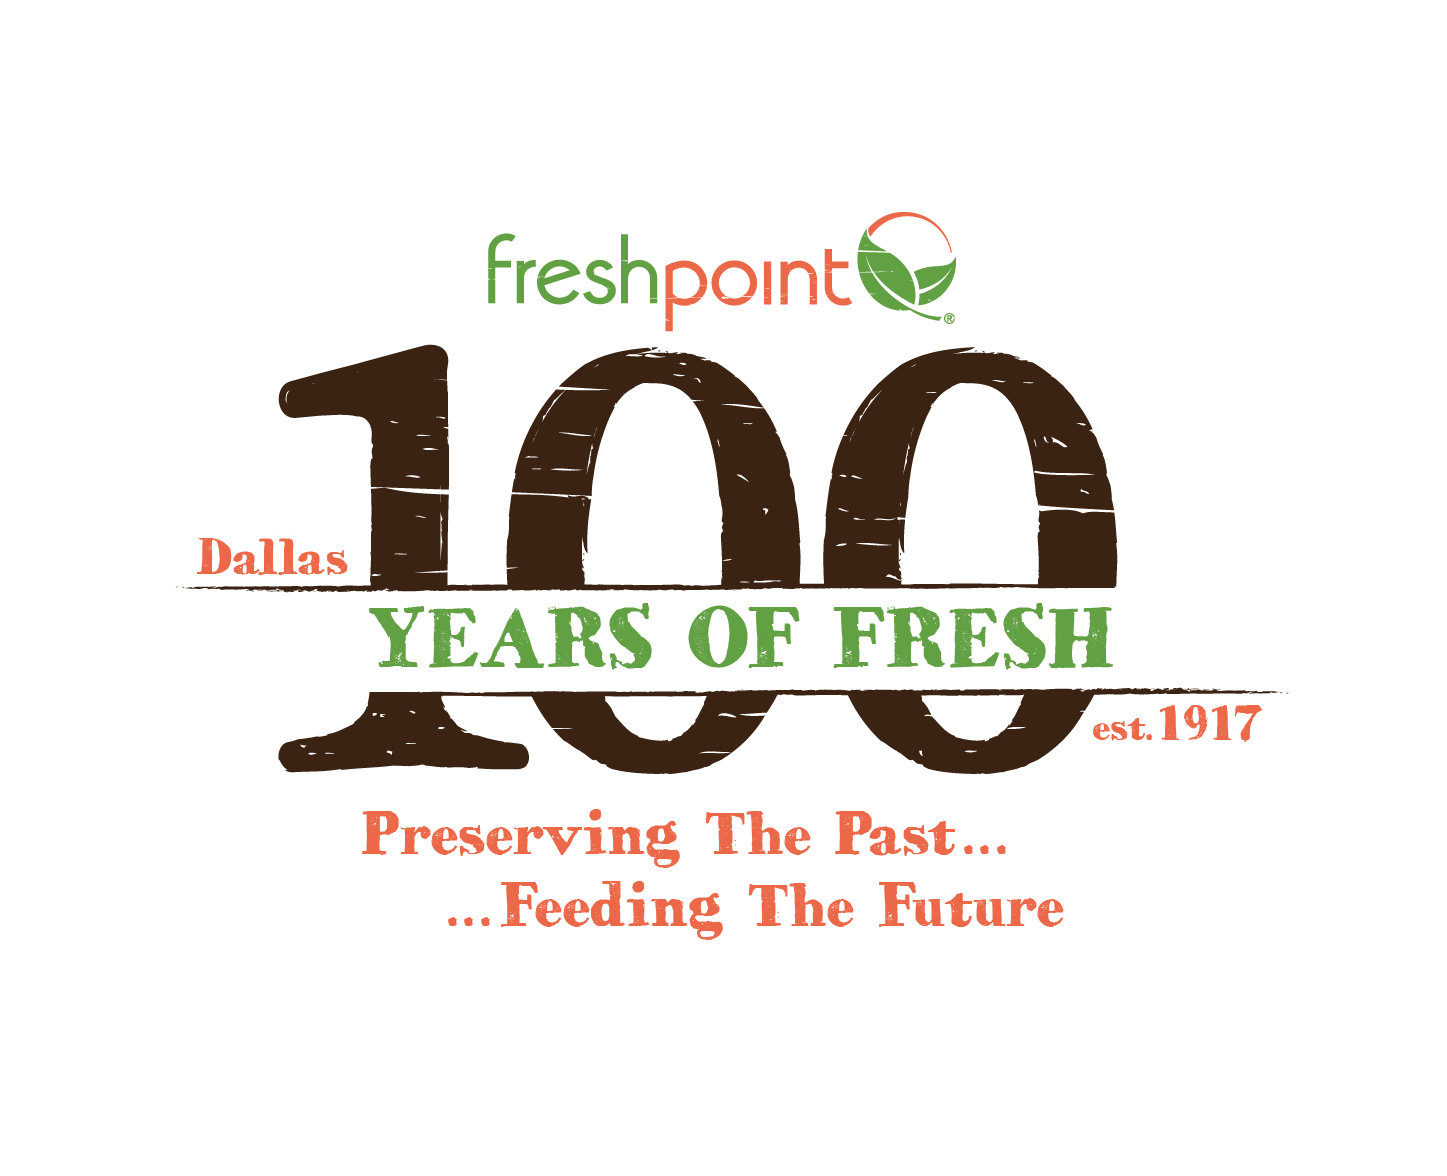 freshpoint-produce-dallas-100-years-anniversary